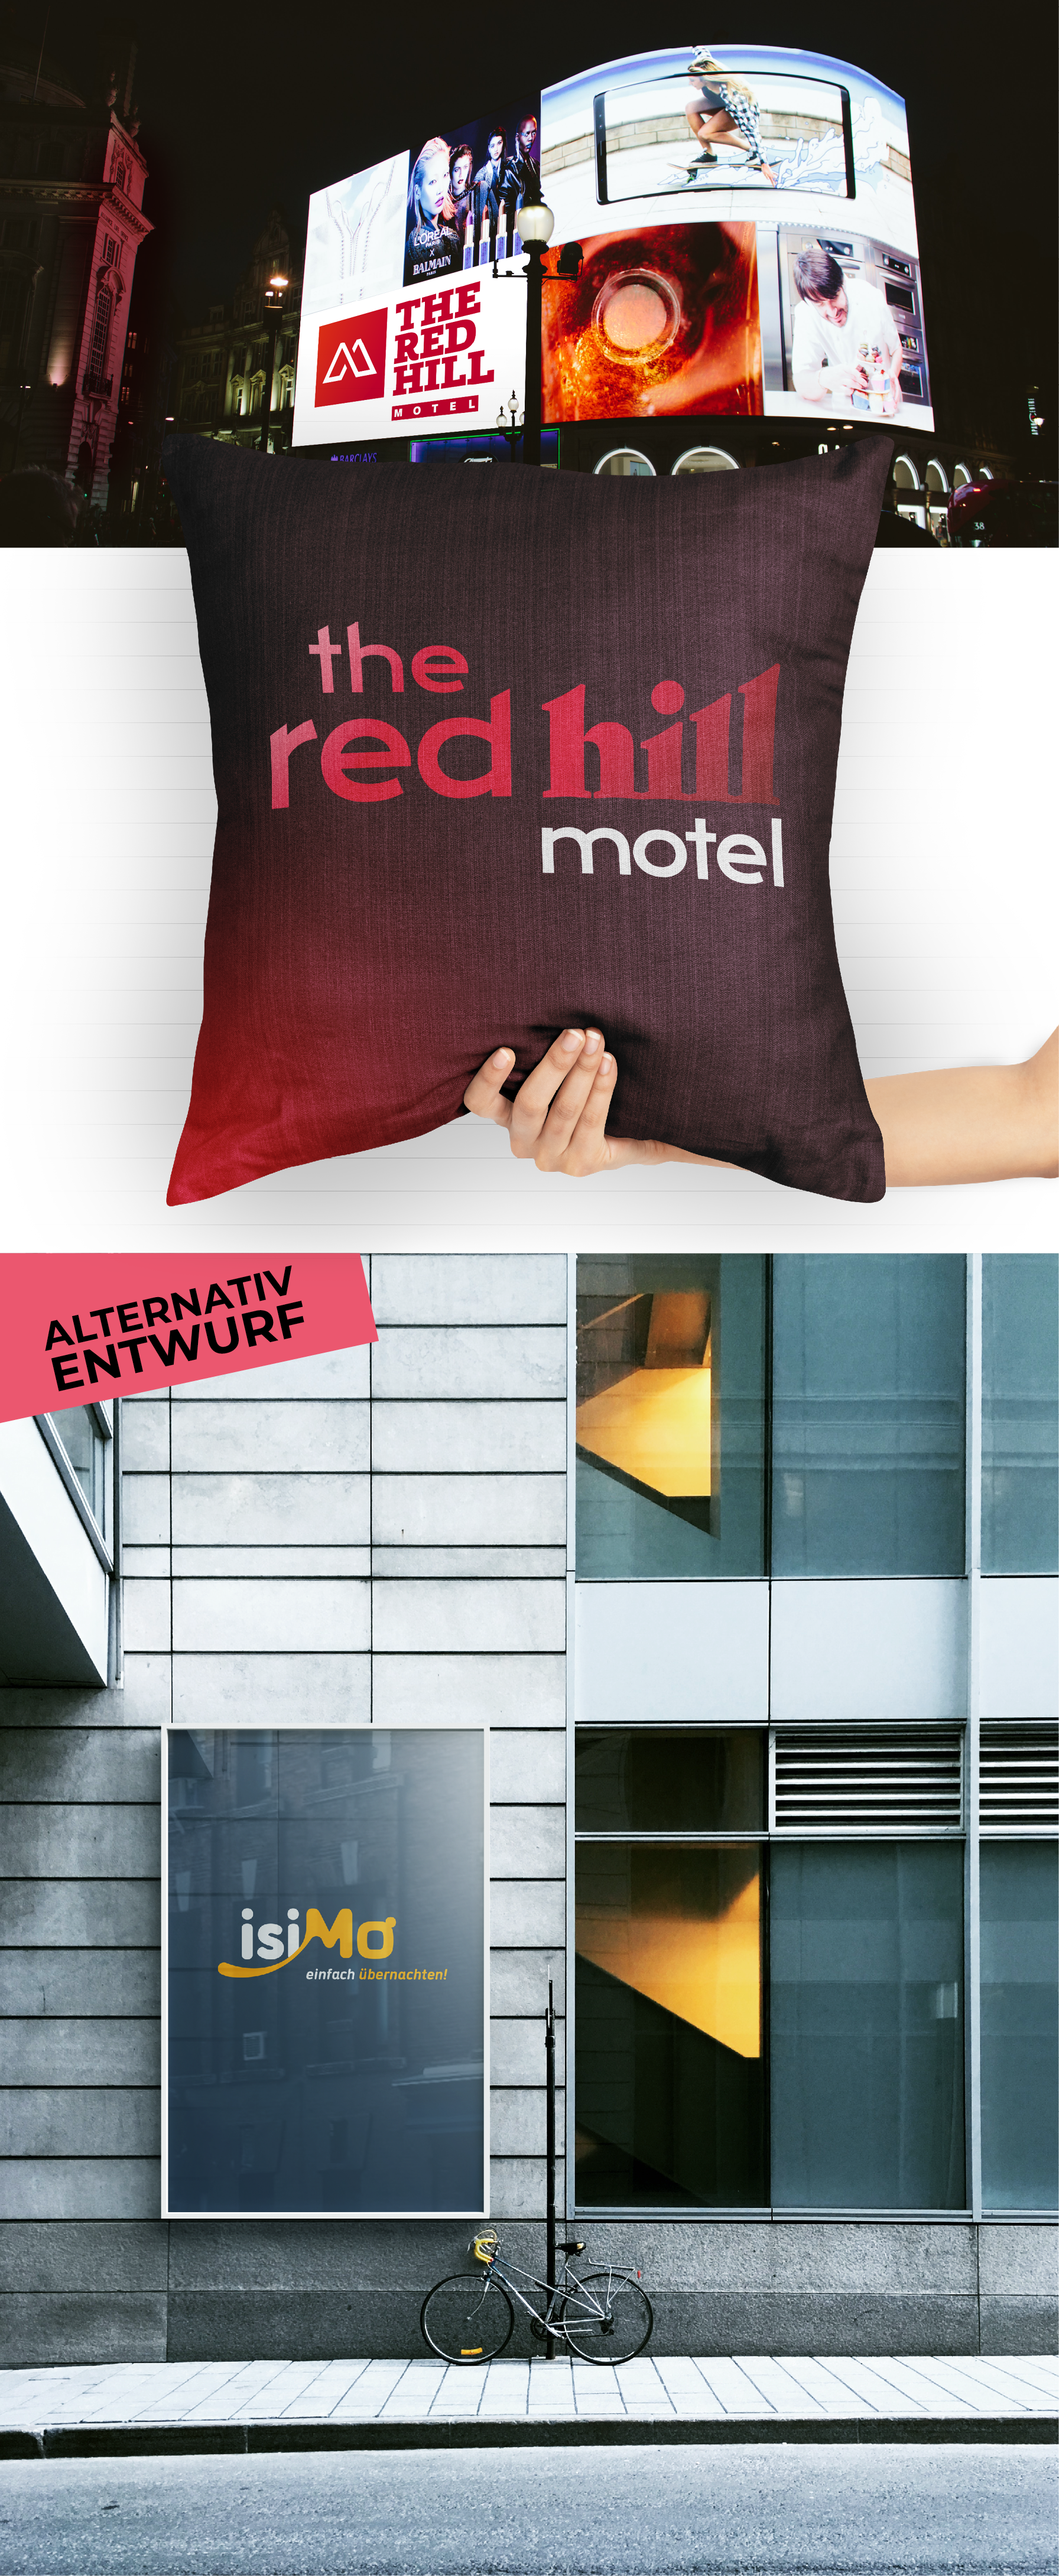 Samt&Seidel_Referenz_Treuenburg_TheRedHillMotel_Design_04